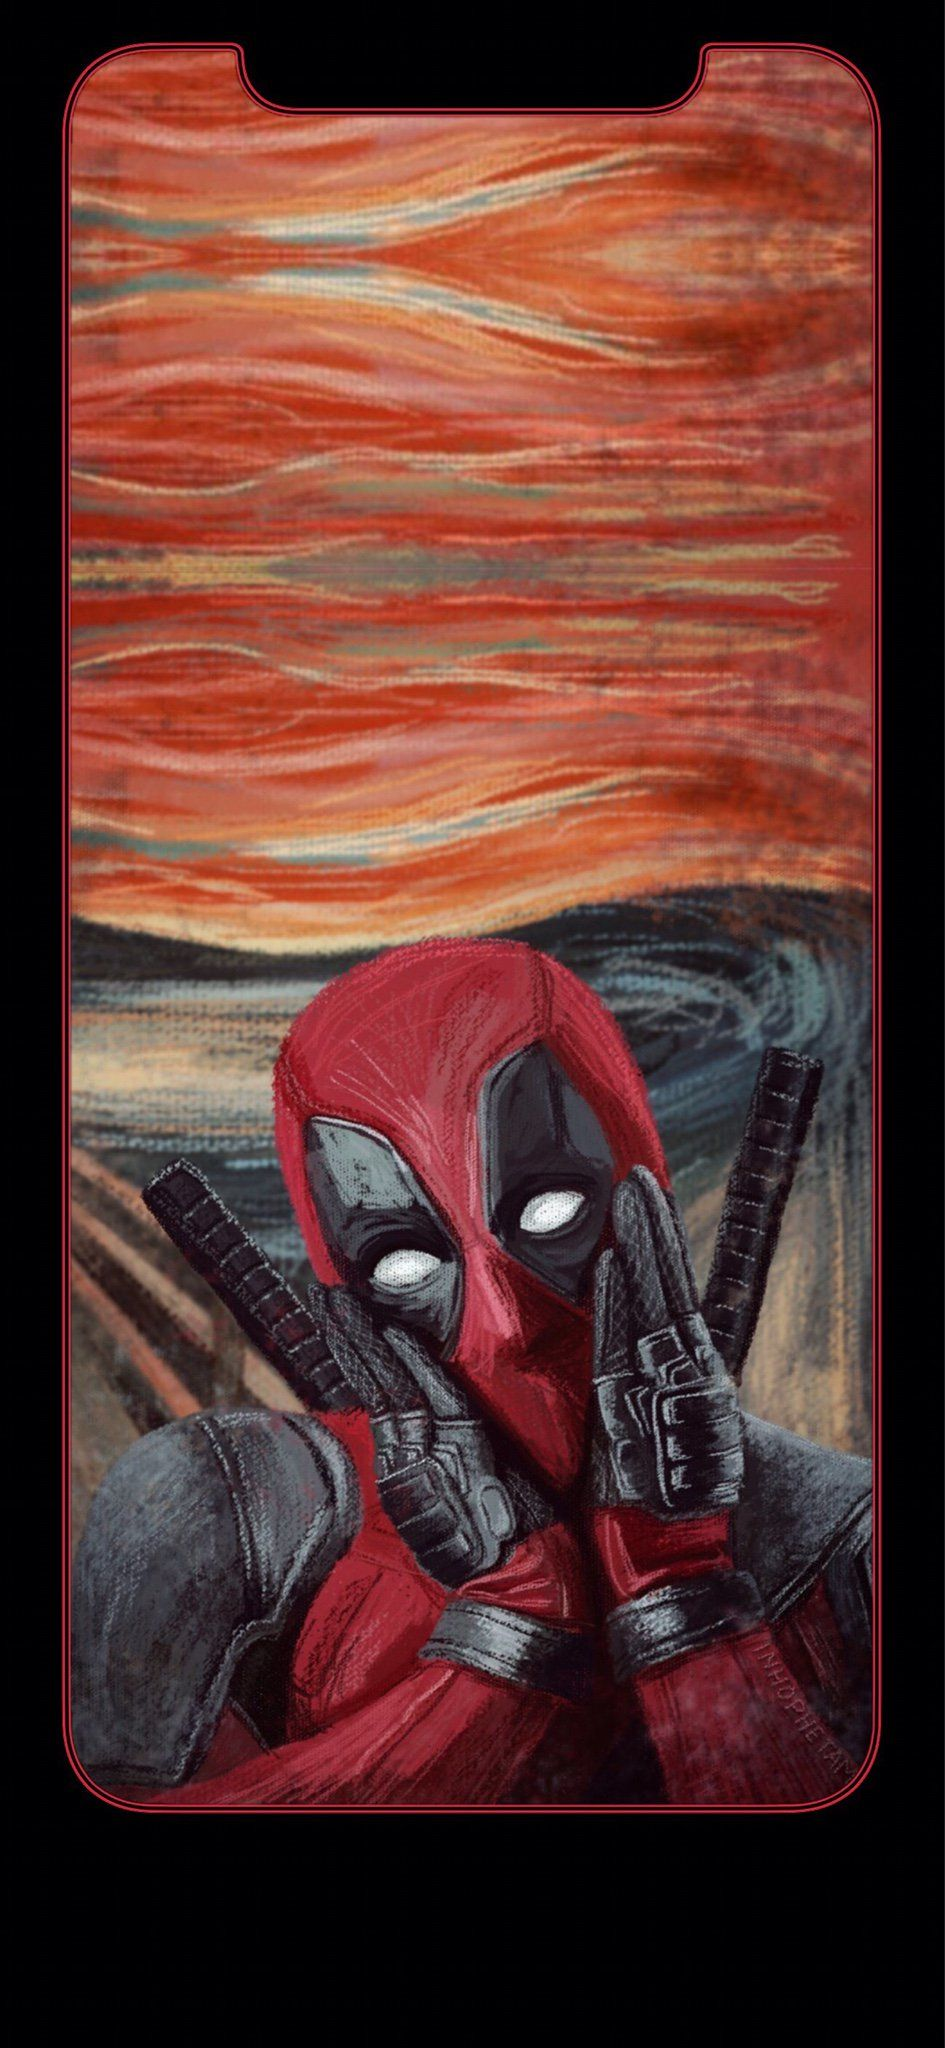 The Iphone X Xs Wallpaper Thread Page 50 Iphone Ipad Ipod Forums At Imore Com Deadpool Wallpaper Iphone Cool Wallpapers For Phones Deadpool Wallpaper